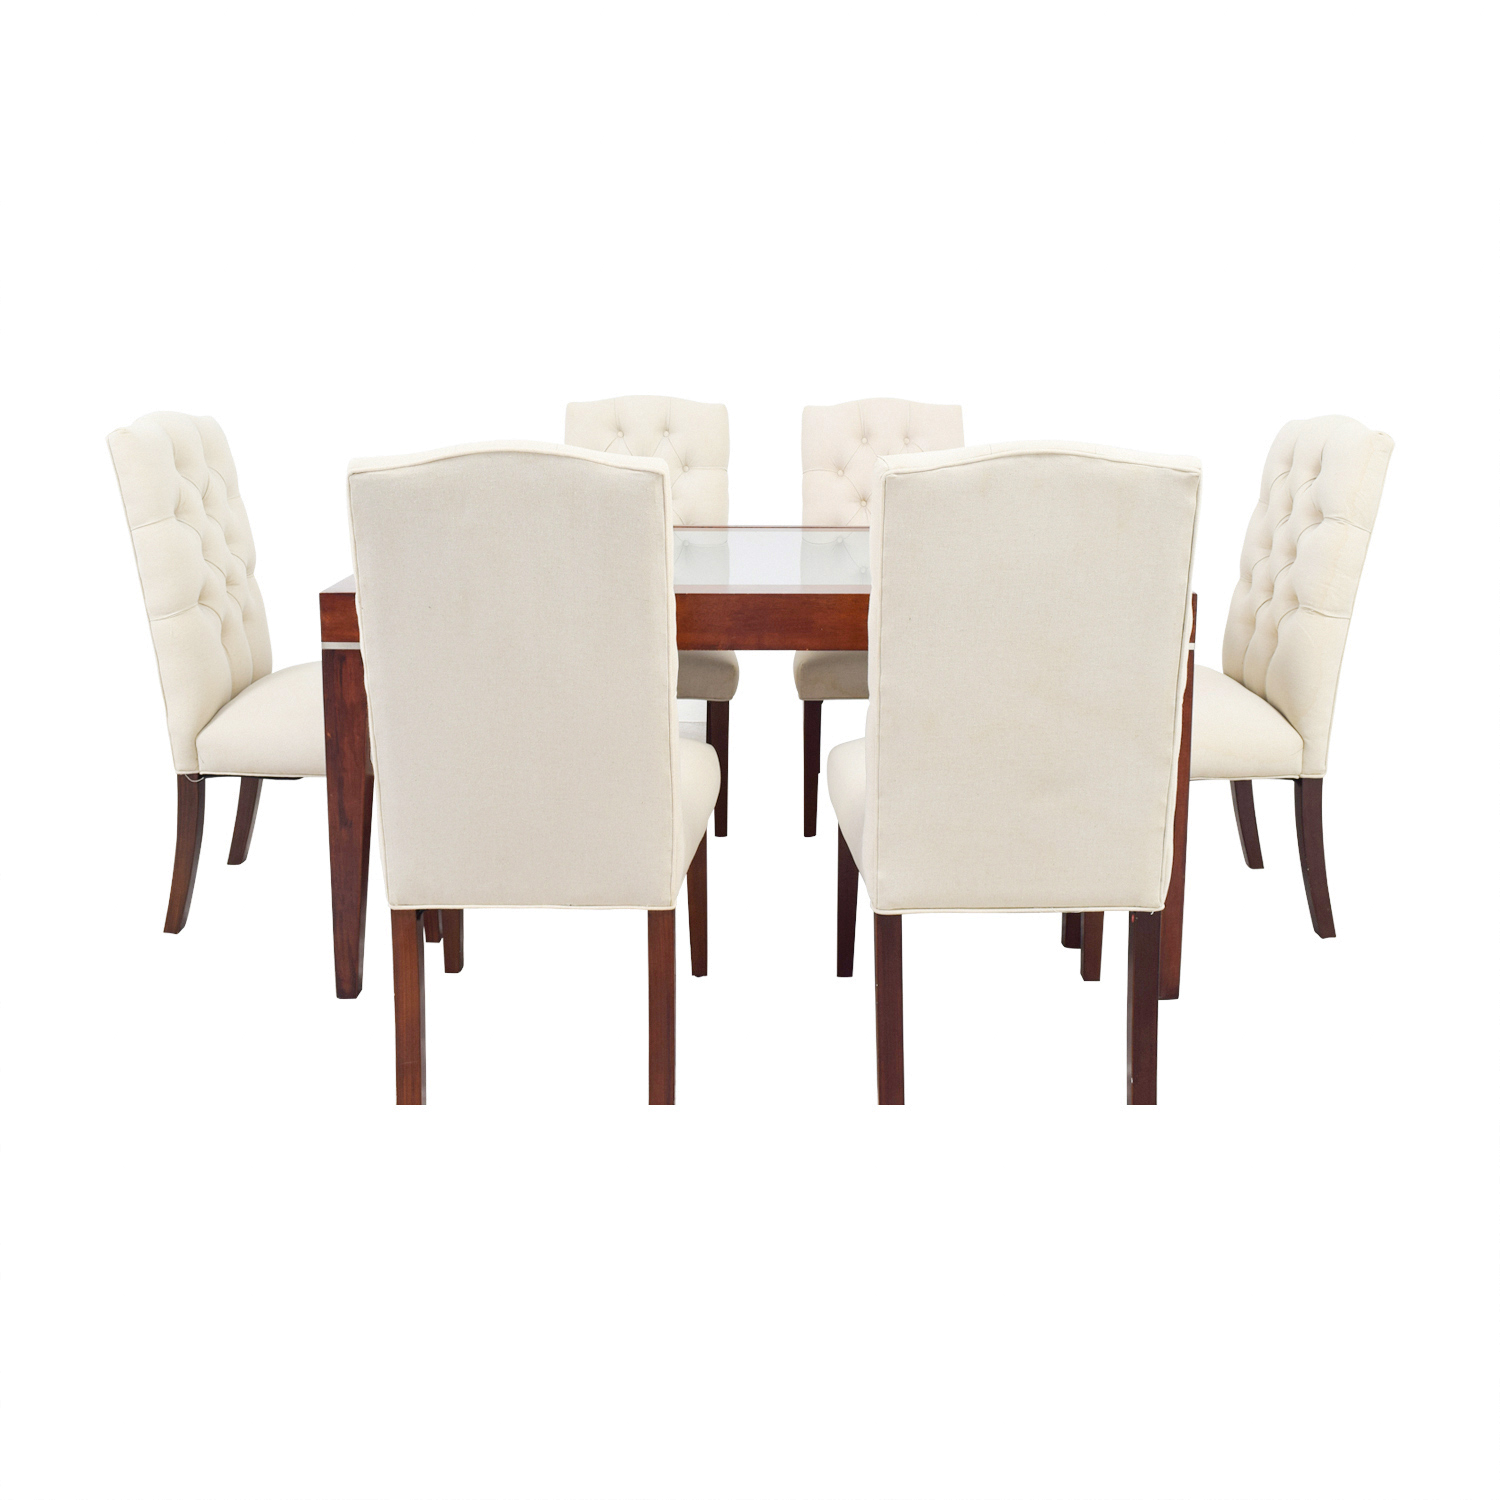 West Elm West Elm Extendable Glass & Wood Dining Set with Upholstered Tufted Chairs